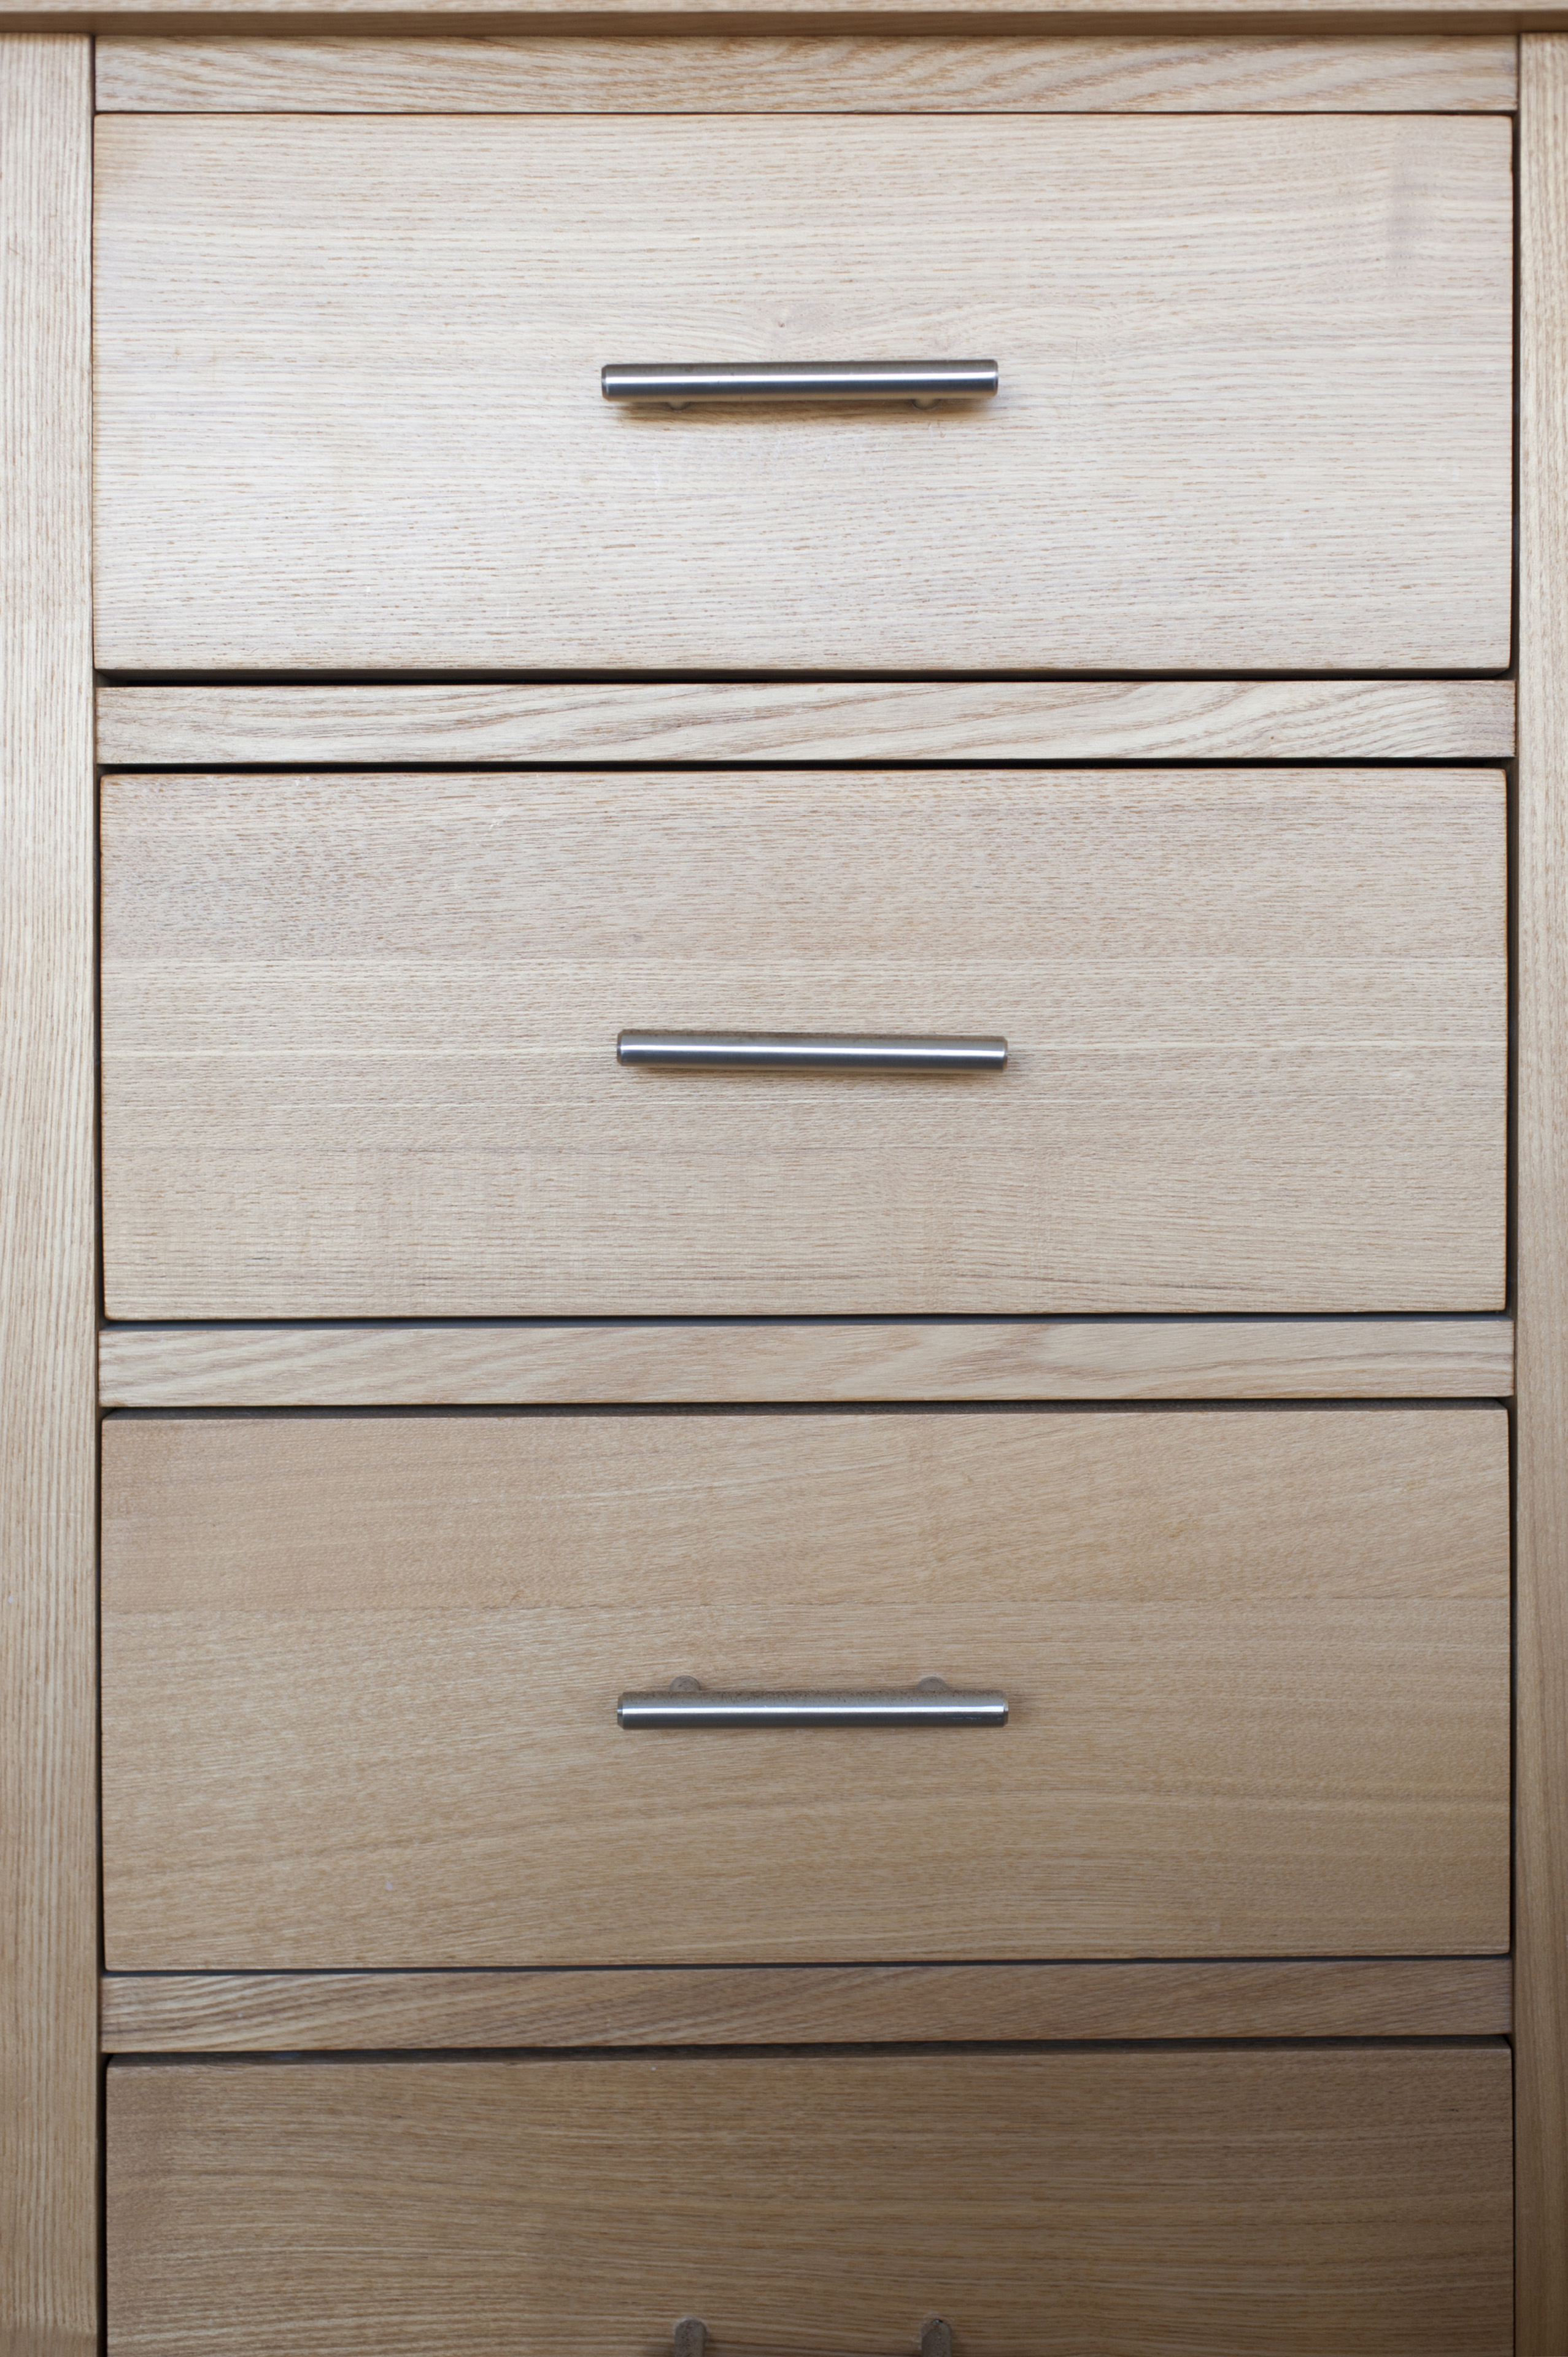 Image of Natural wood chest of drawers FreebiePhotography